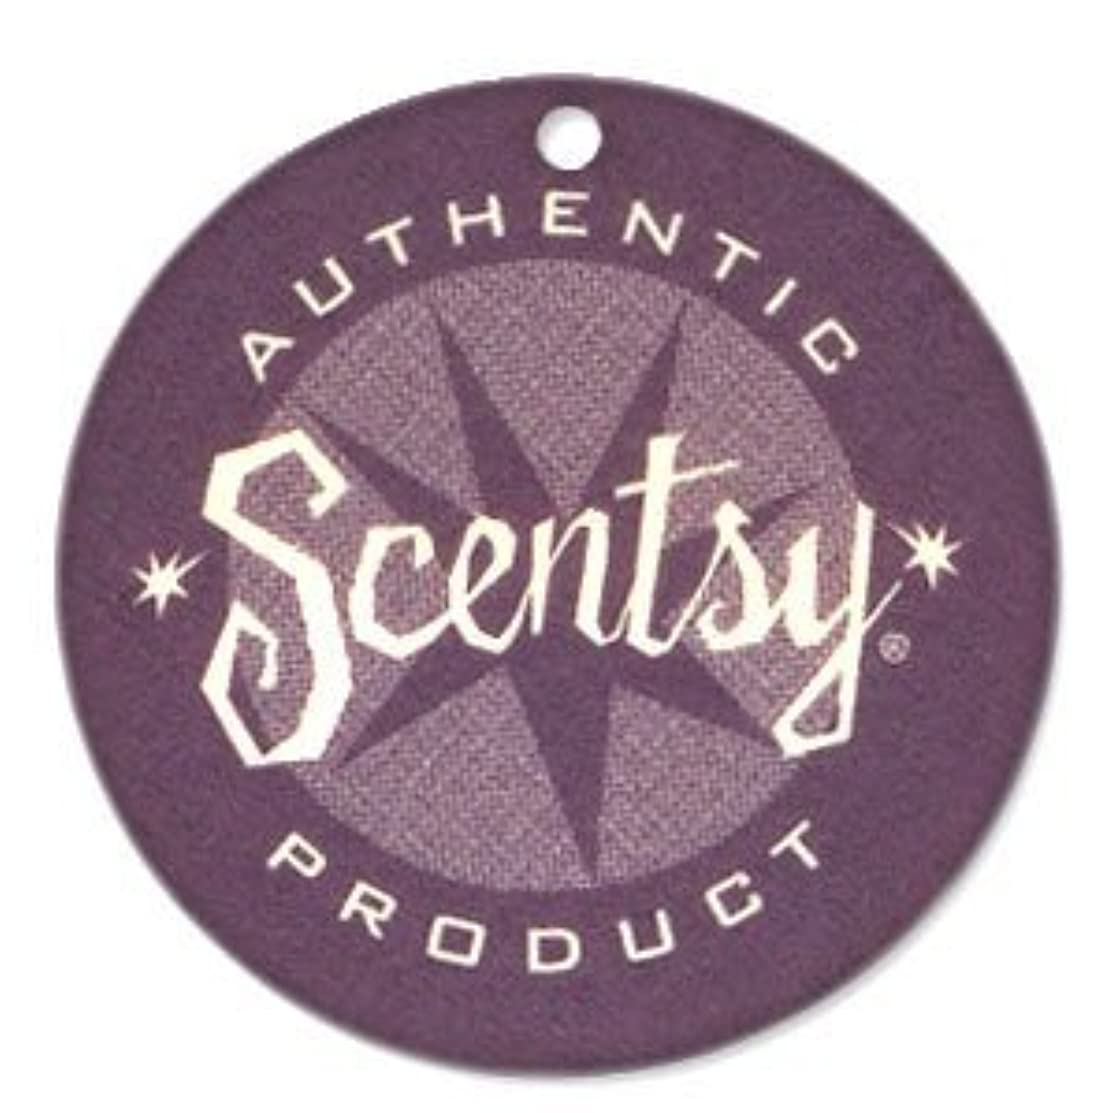 Scentsy Scent Circle Paradise Punch Fragrance Disc by Scentsy